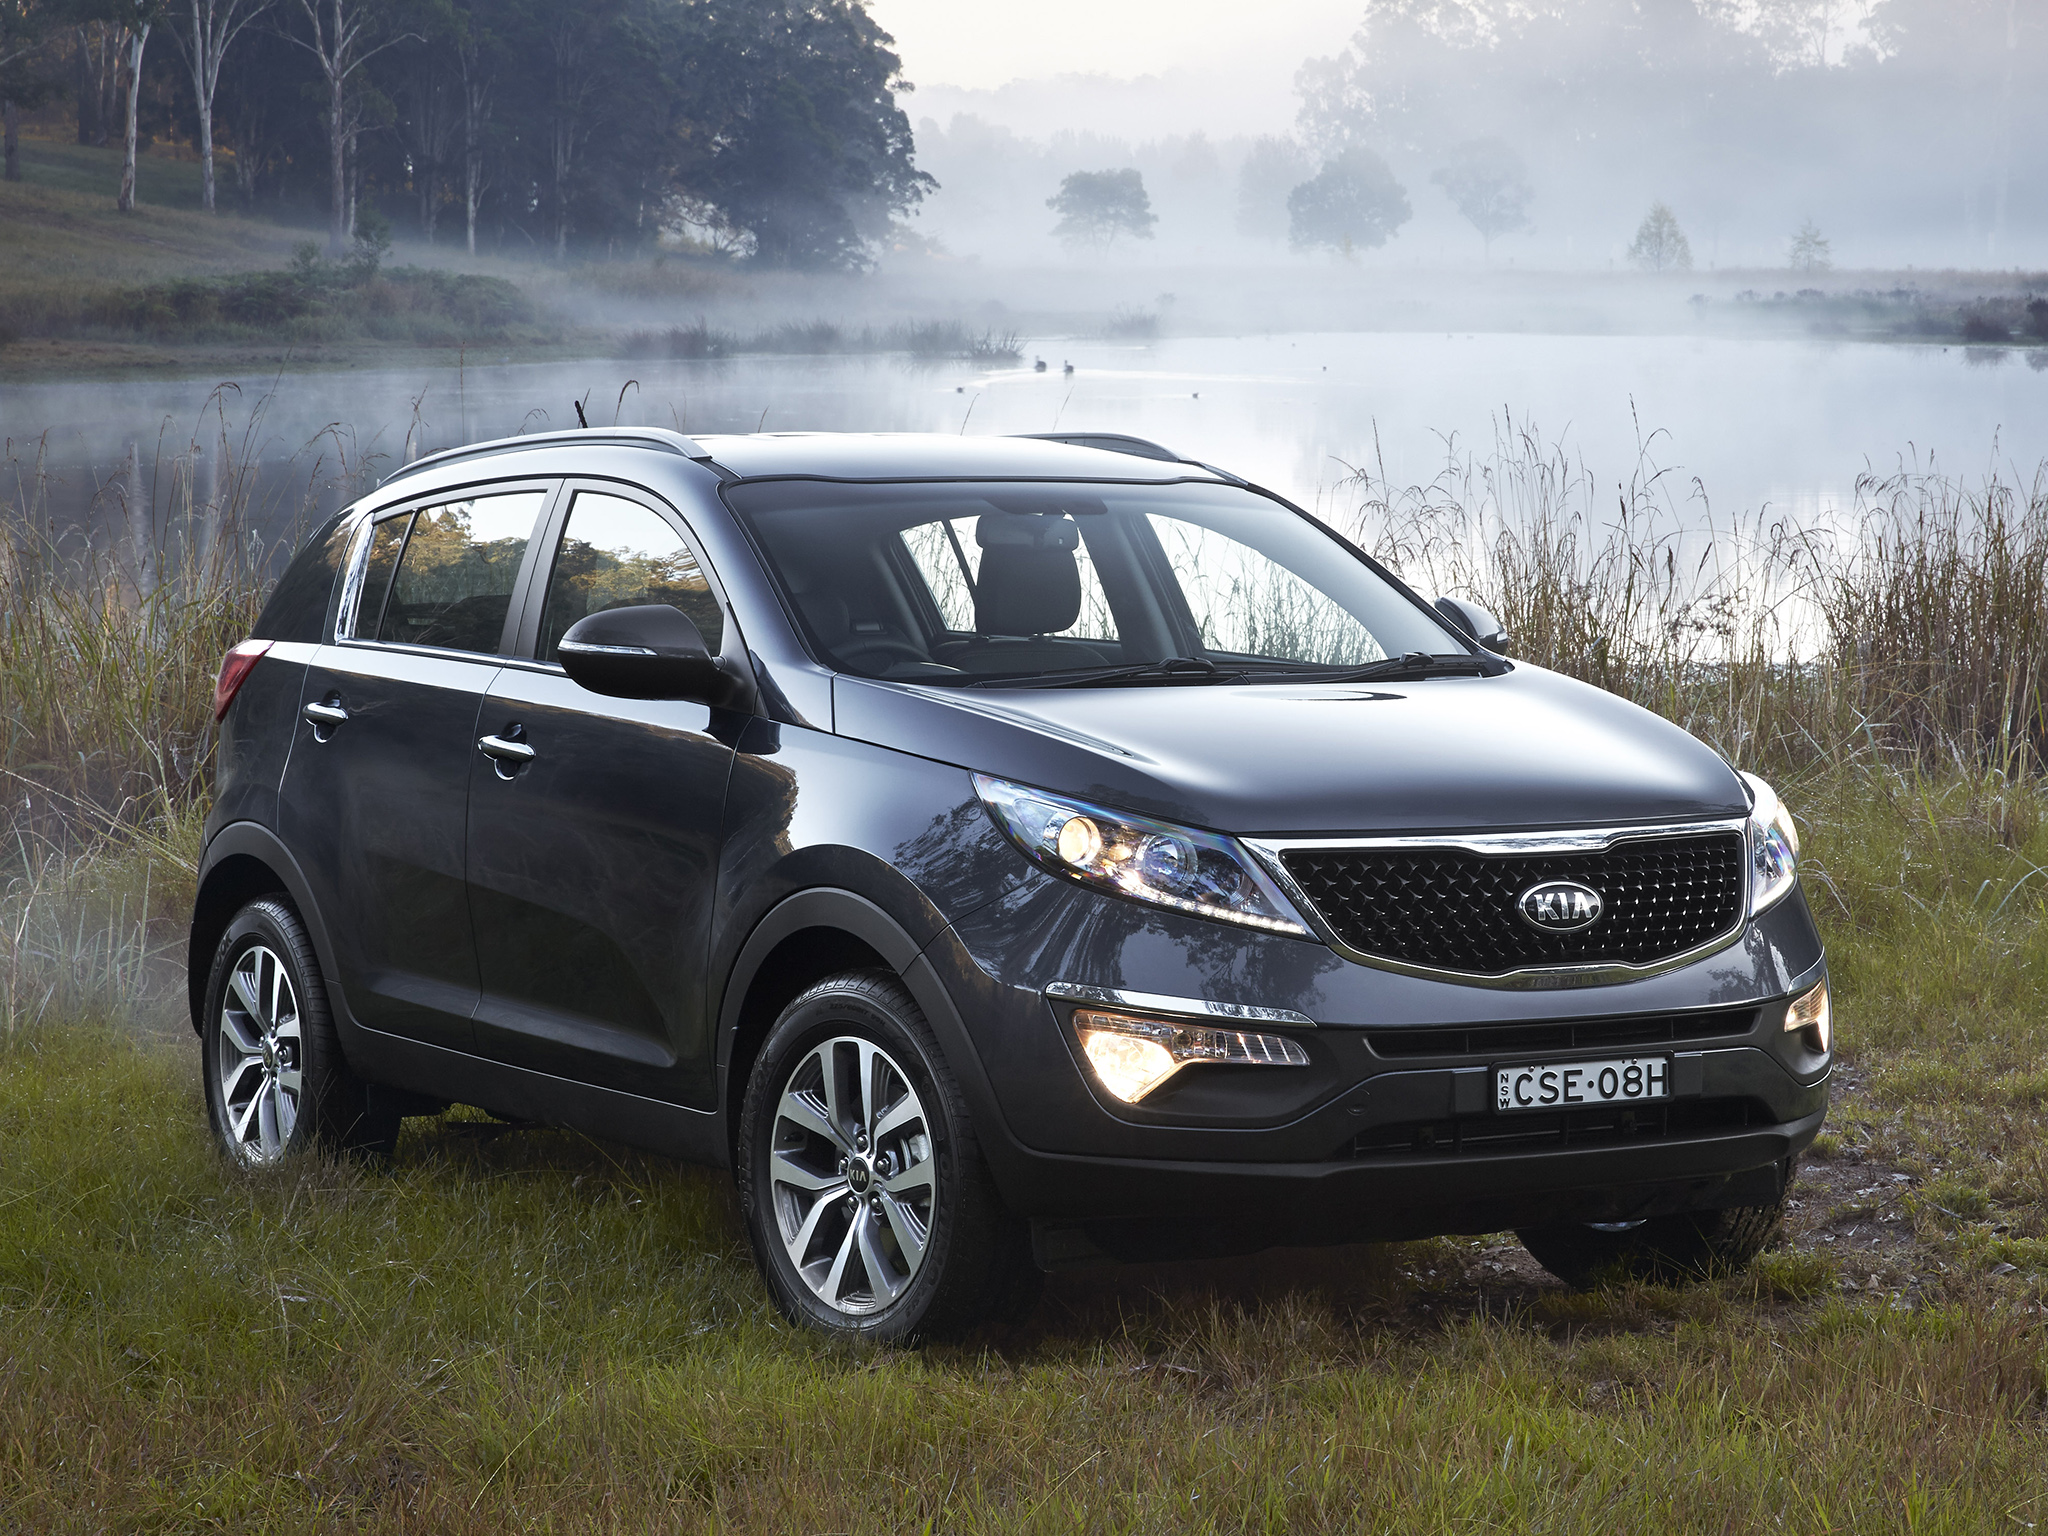 Kia Sportage Suv Gets New Facelift With Sorento Looks For